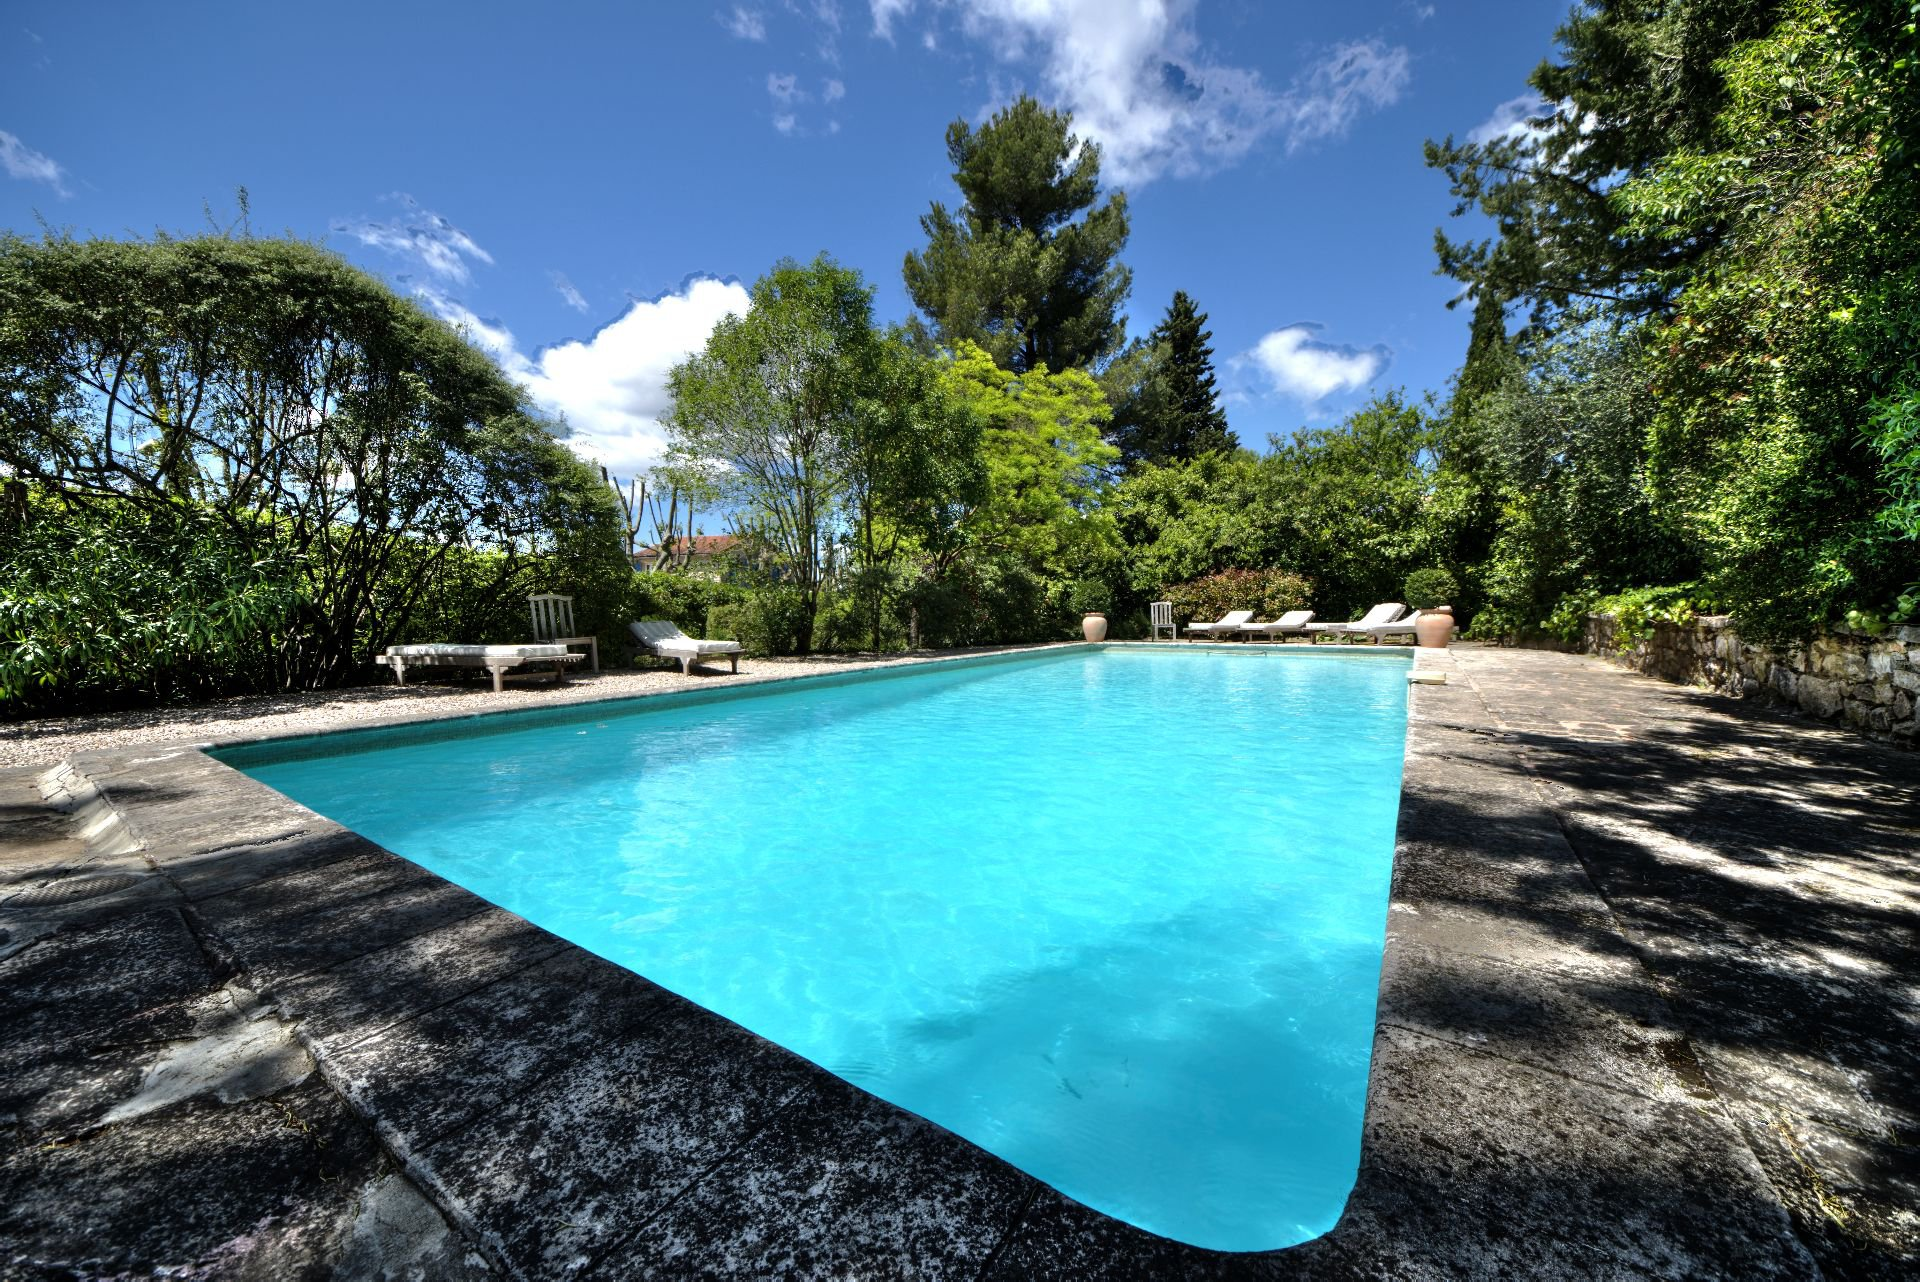 The pool of the guest house with garden and pool Rocbaron, Var, Provence